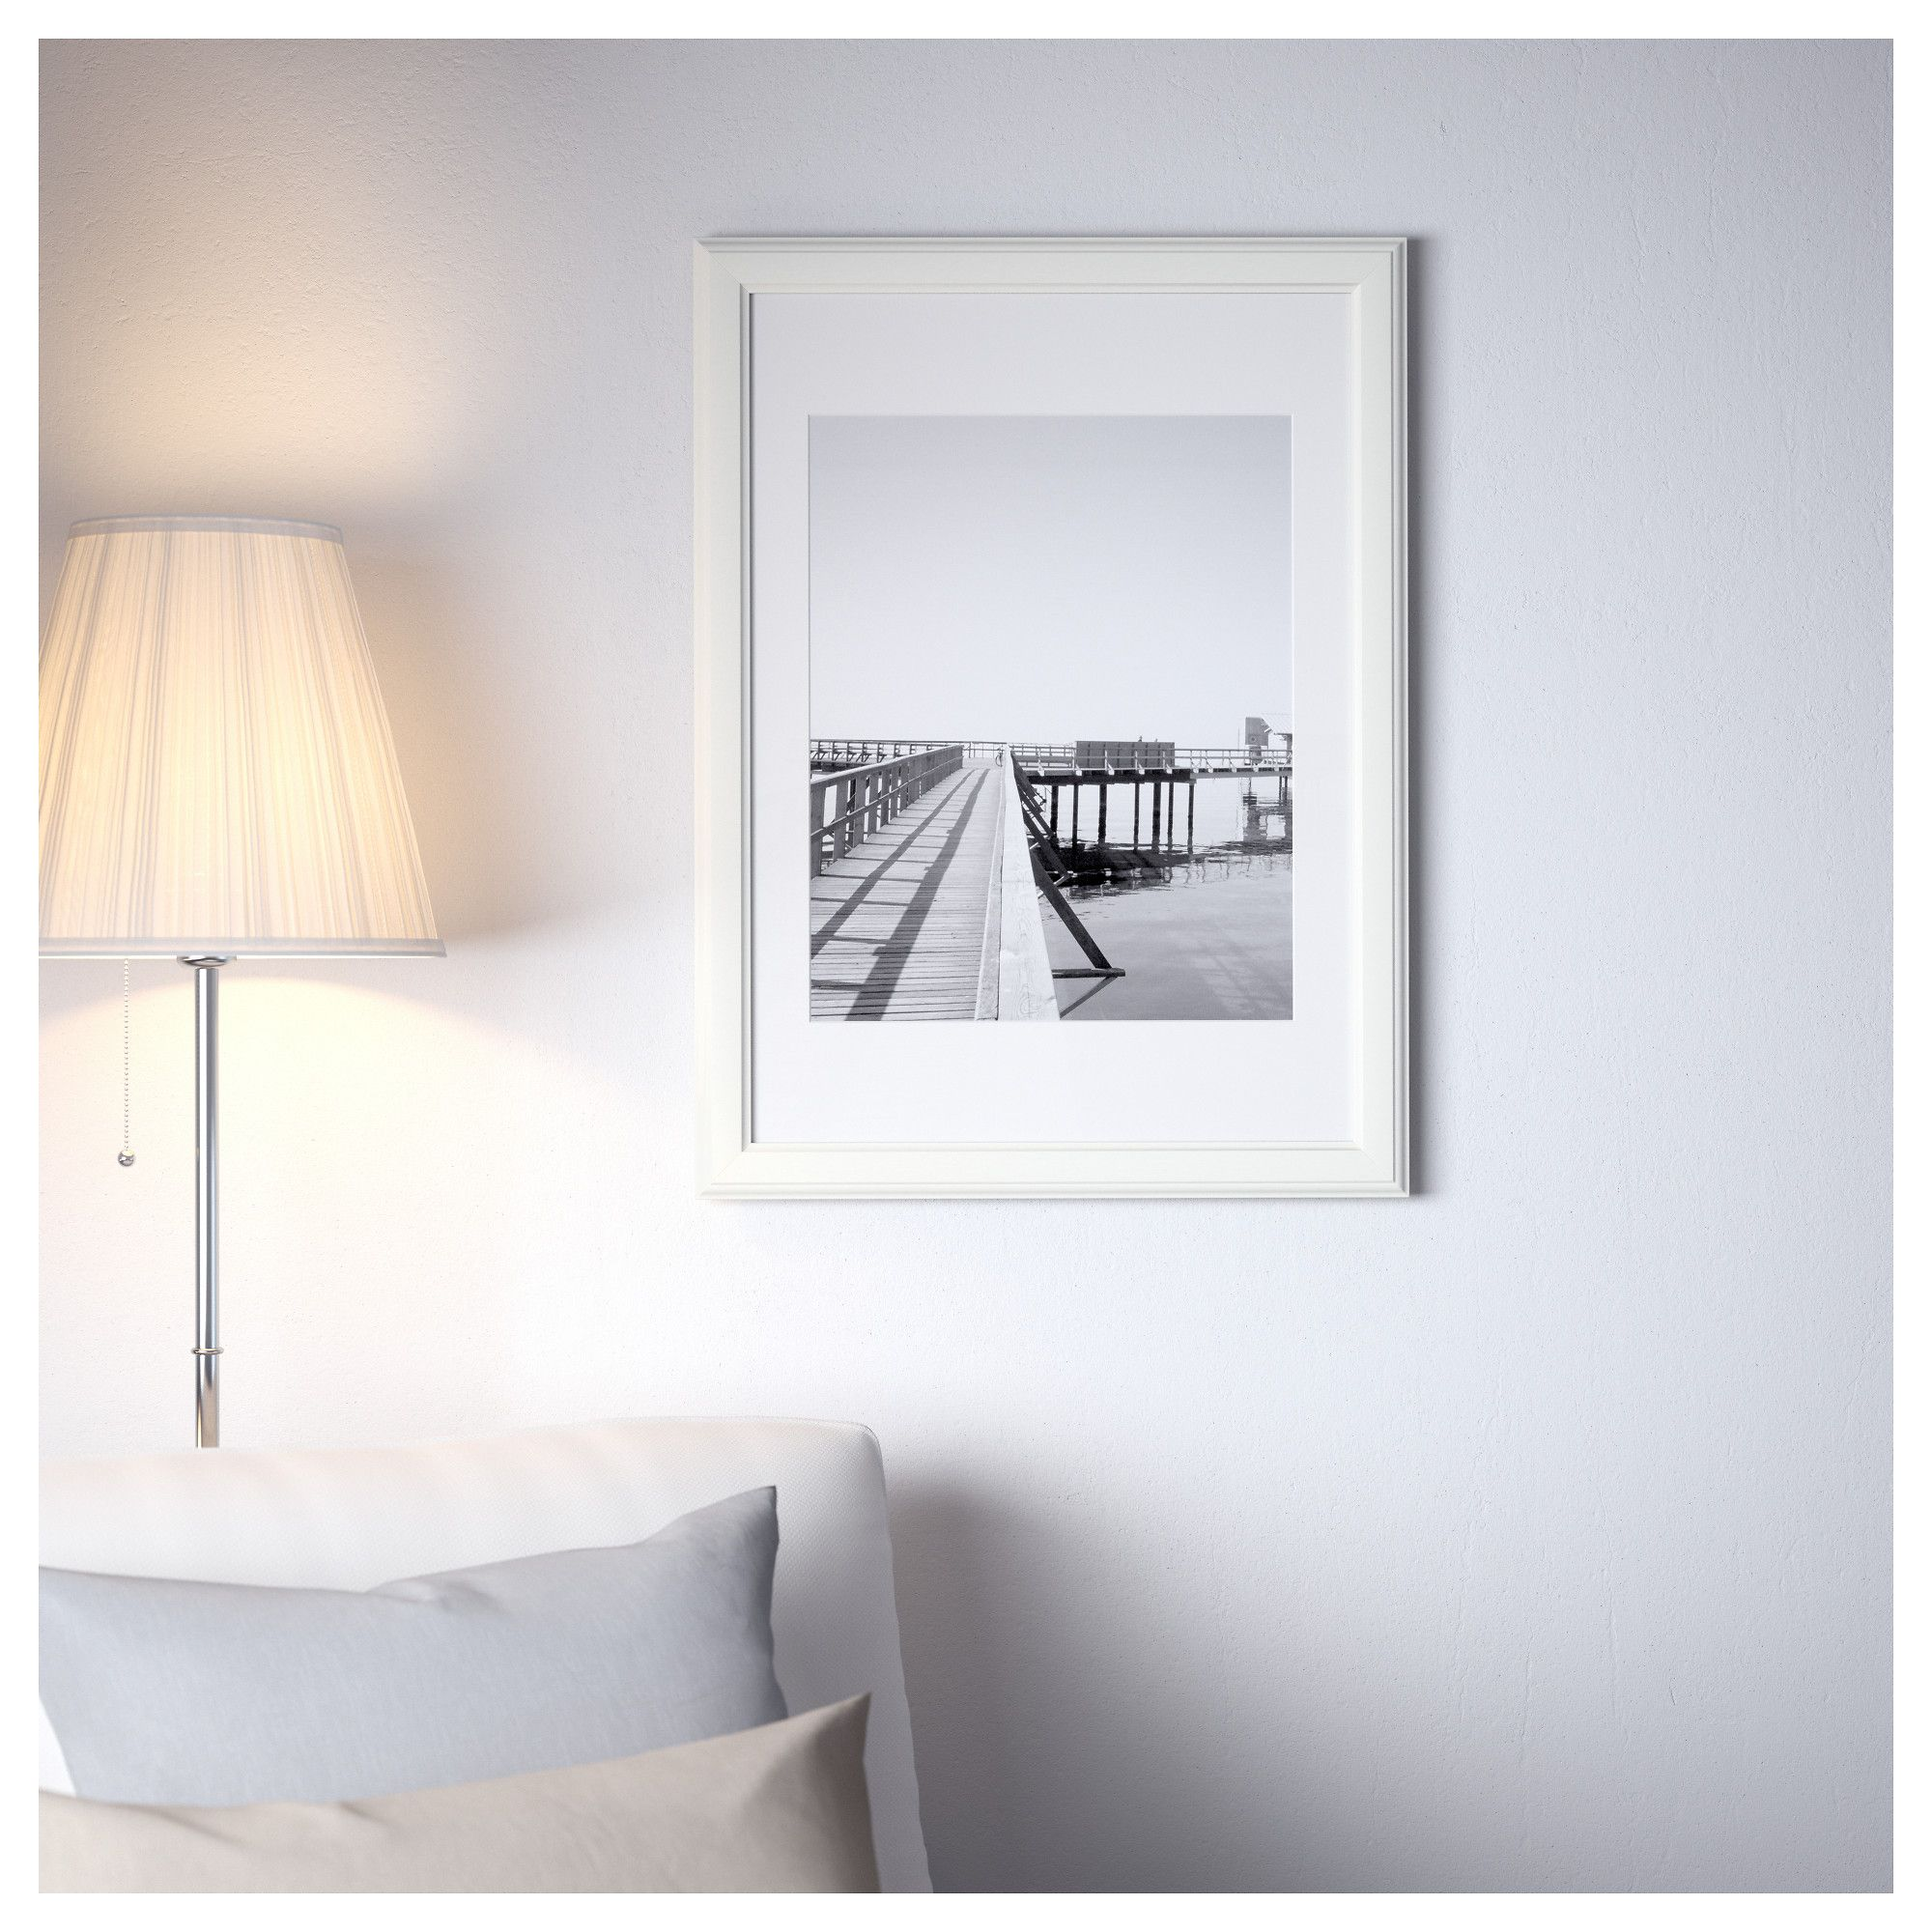 VIRSERUM Frame, white | Products | Pinterest | Frame, Ikea and Home